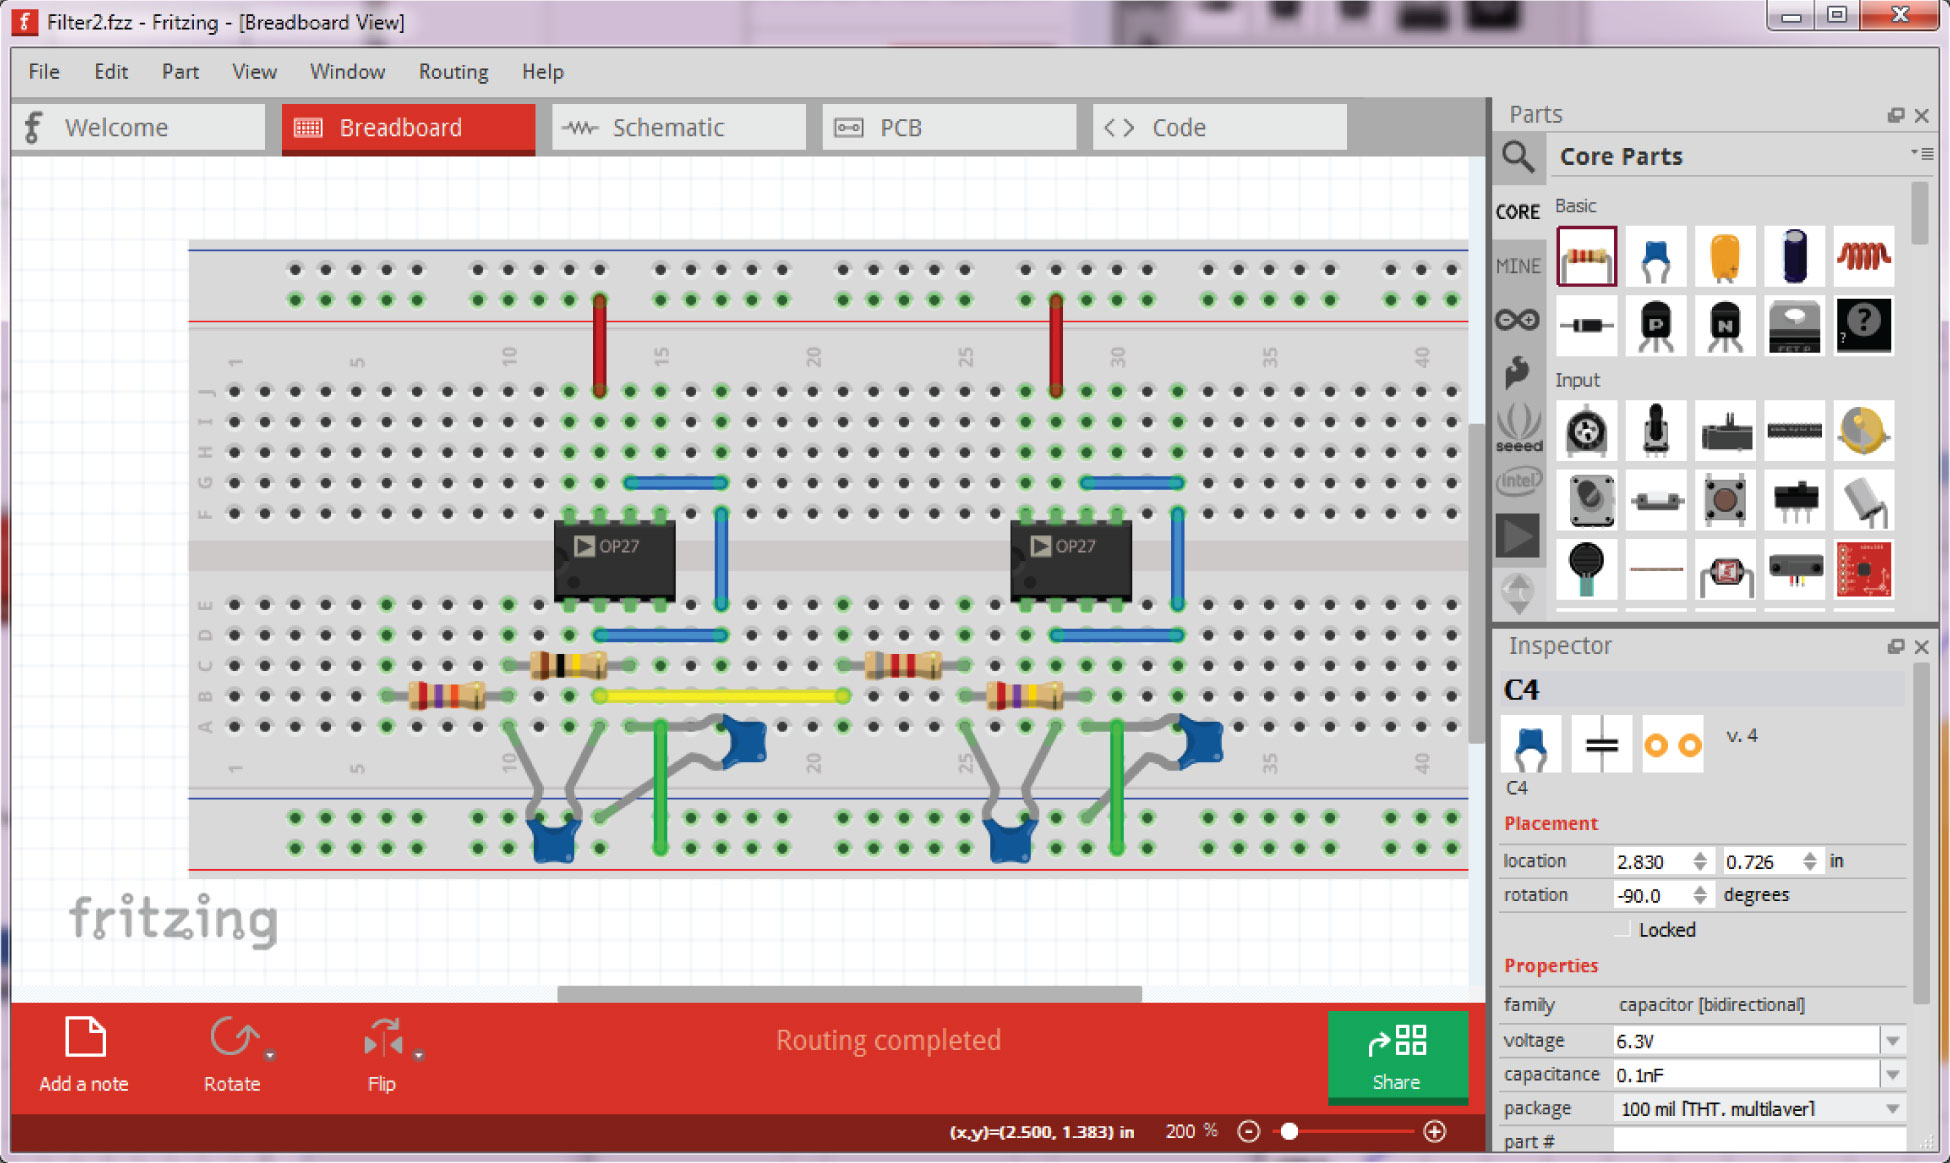 hight resolution of fritzing tool provides a breadboard view of the circuit